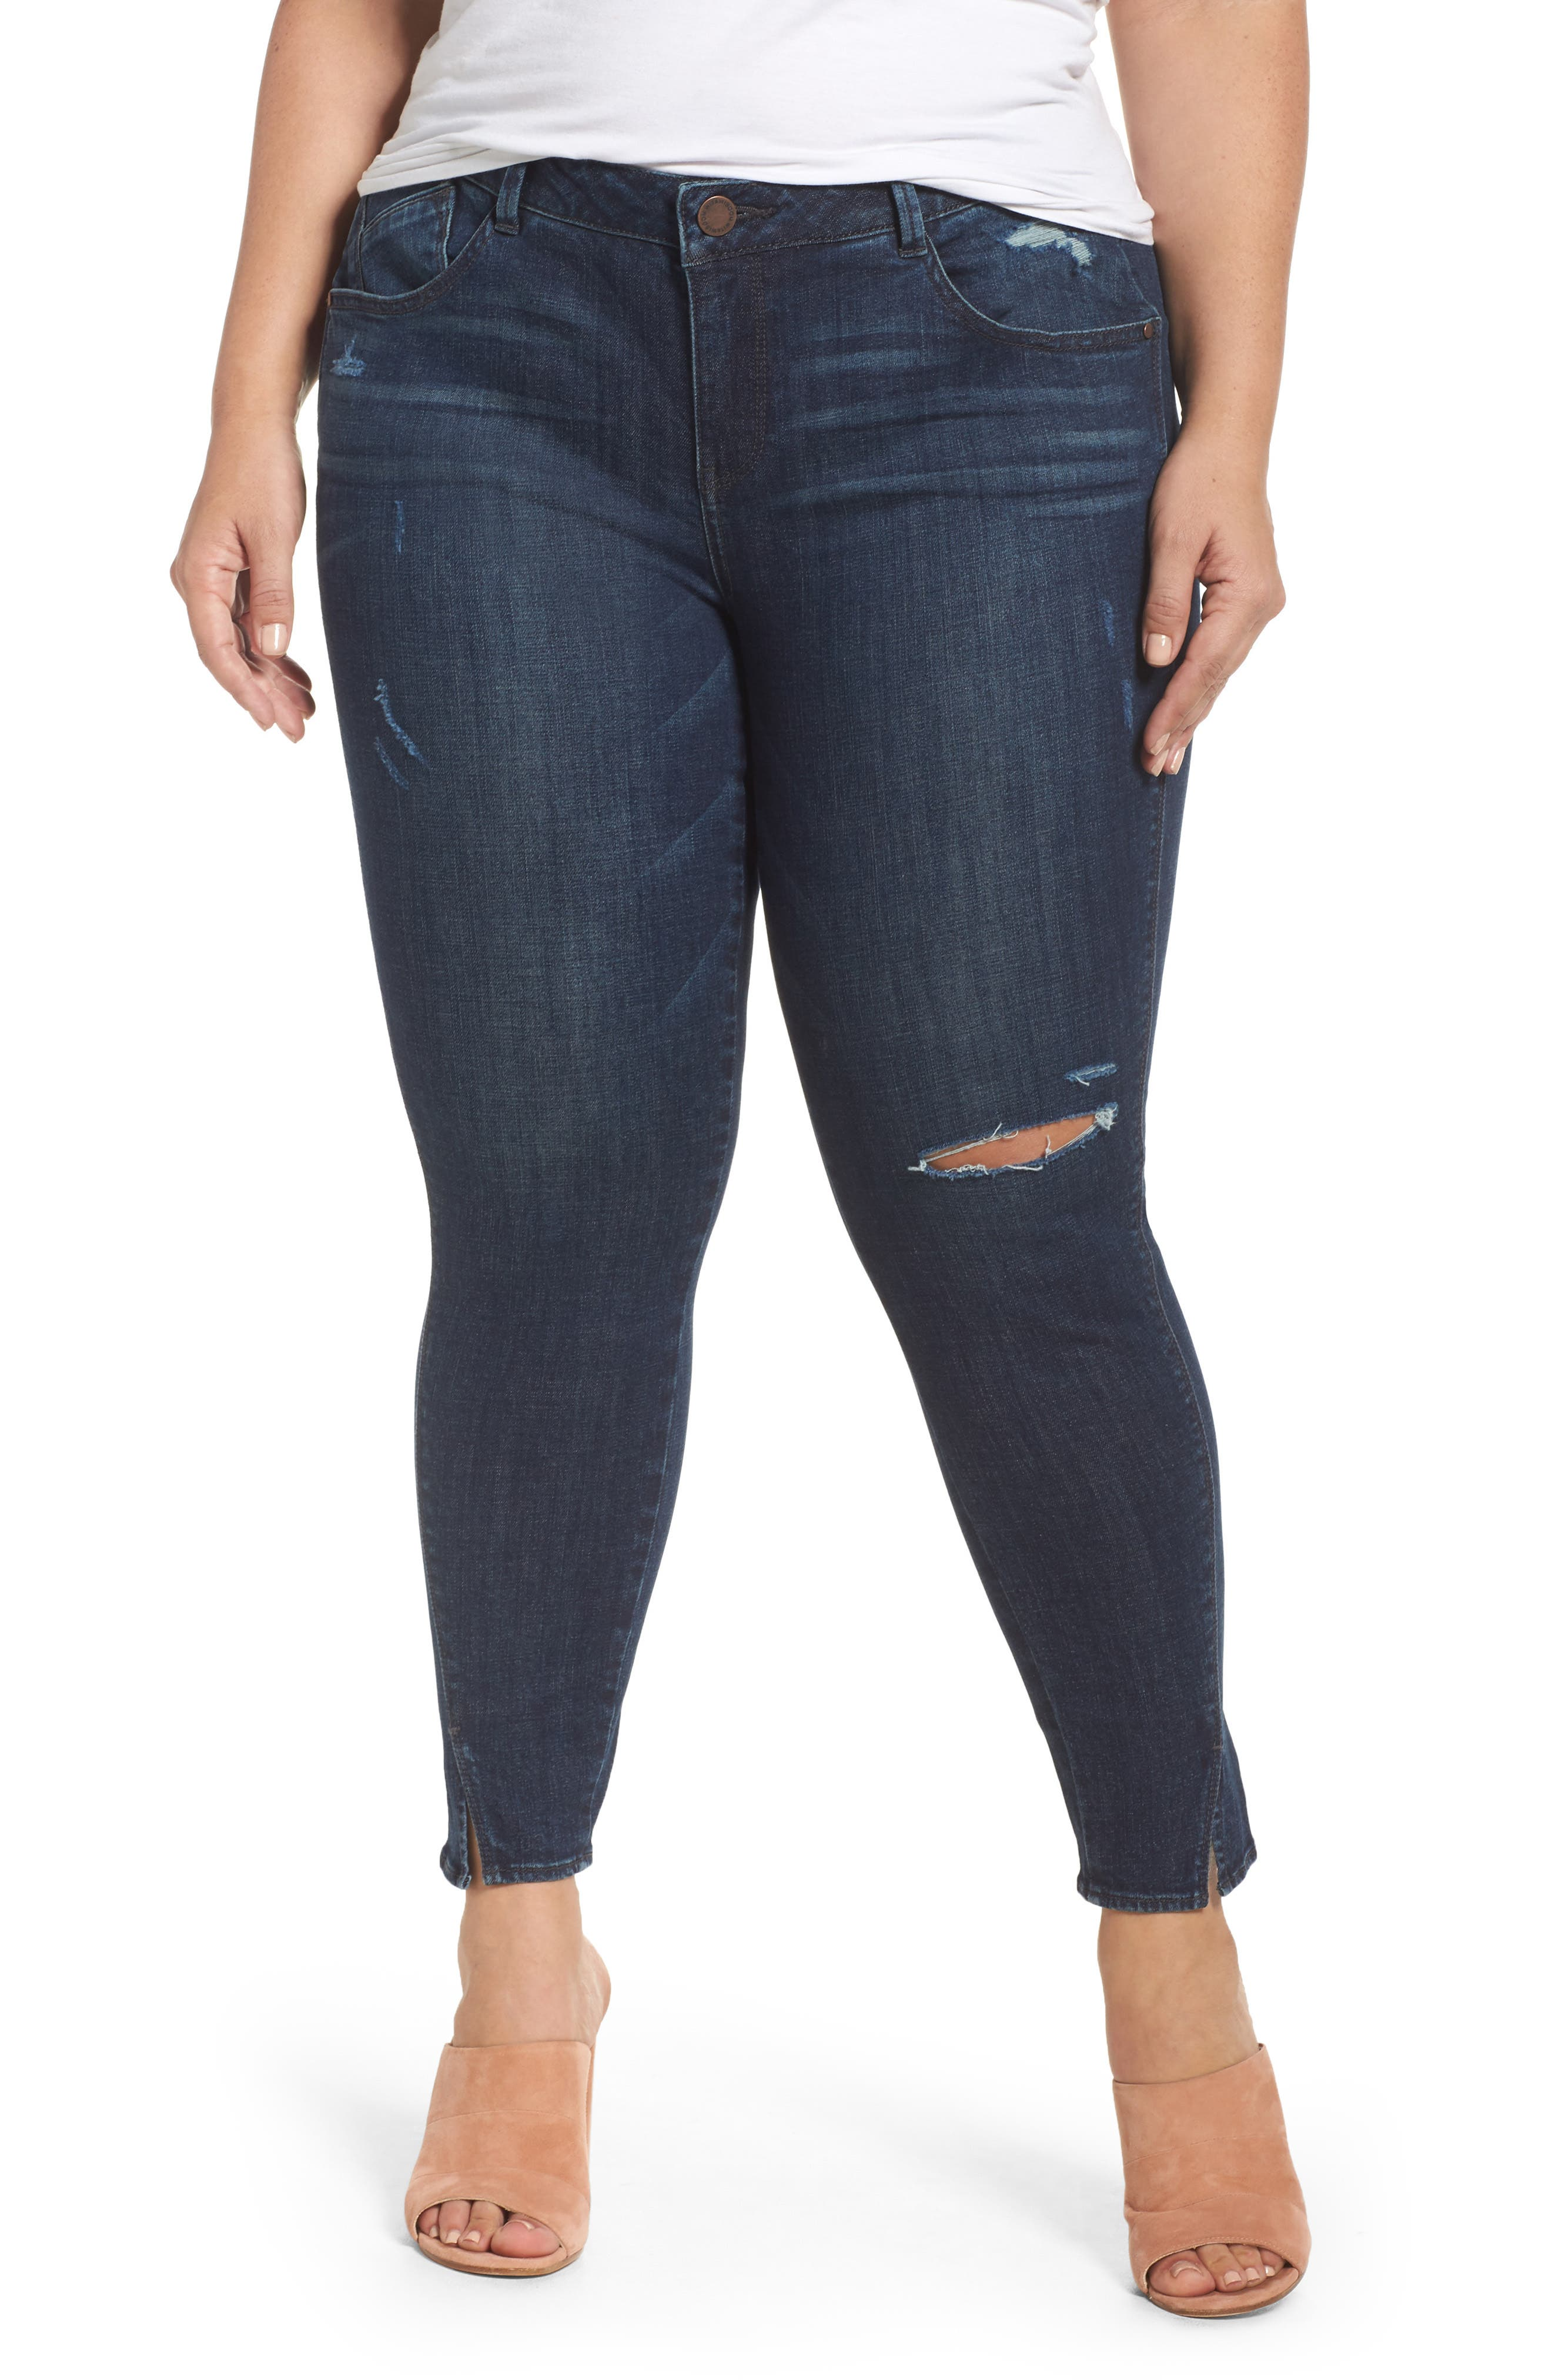 Twisted Seam Ankle Skimmer Jeans,                             Main thumbnail 1, color,                             402